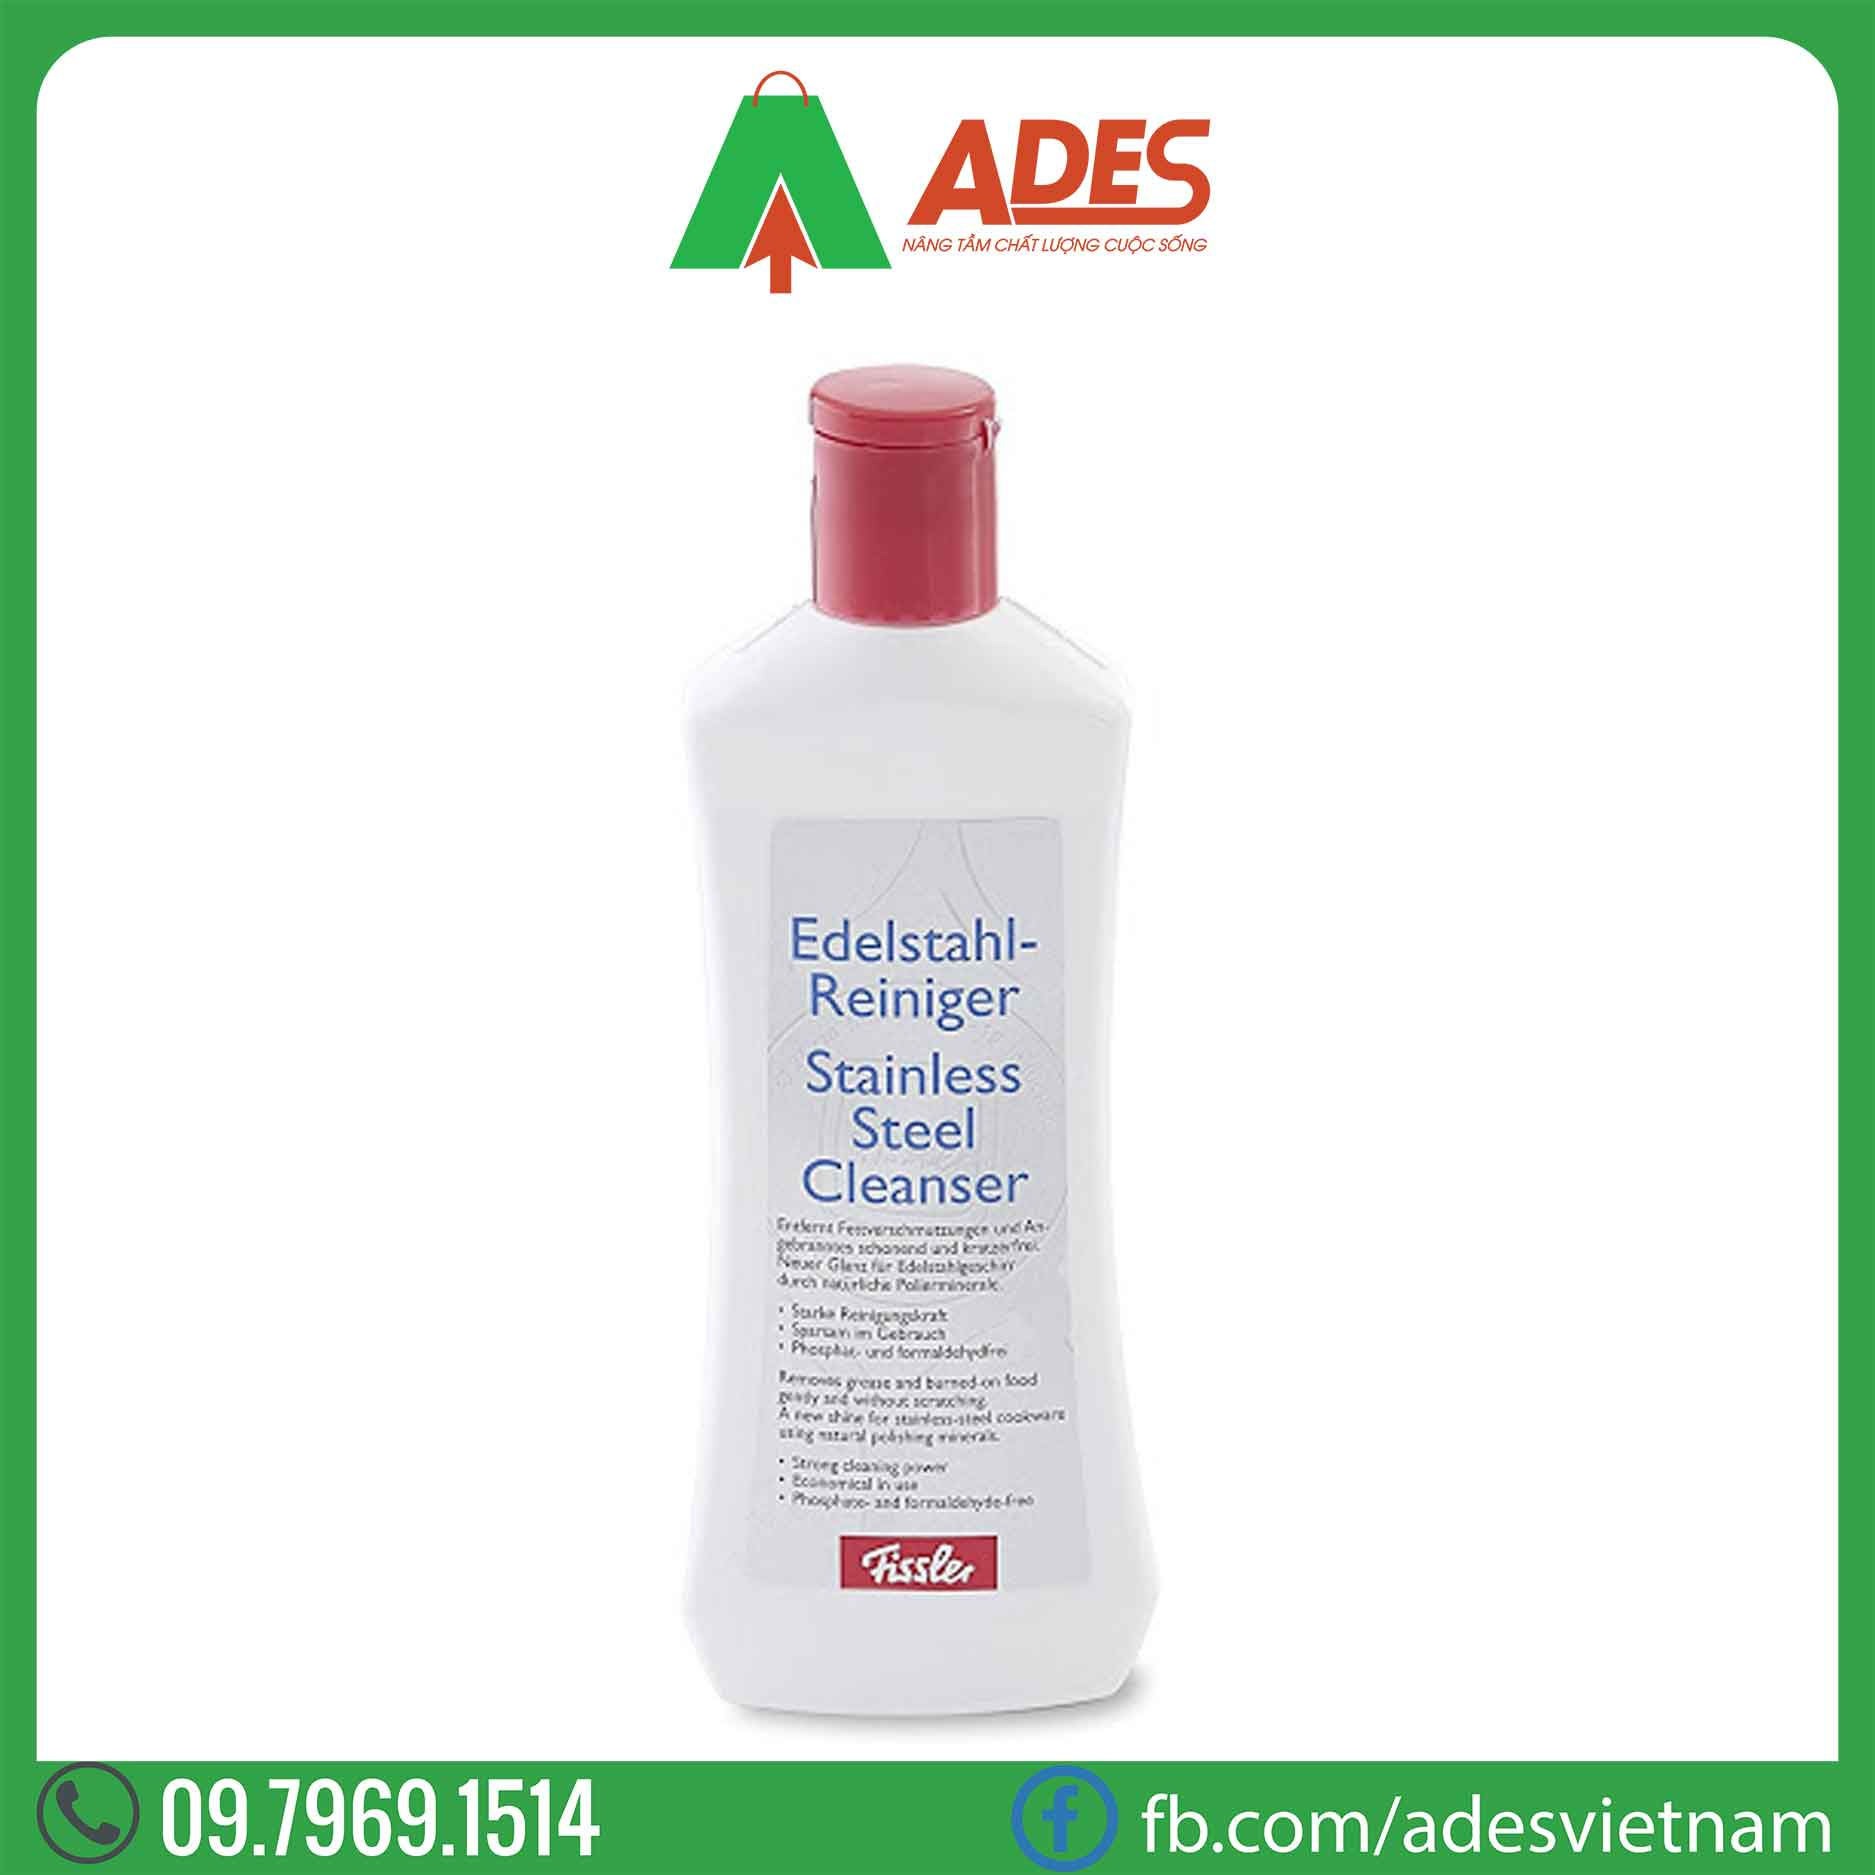 dung dich tay o FisslerStainless Steel Cleanser